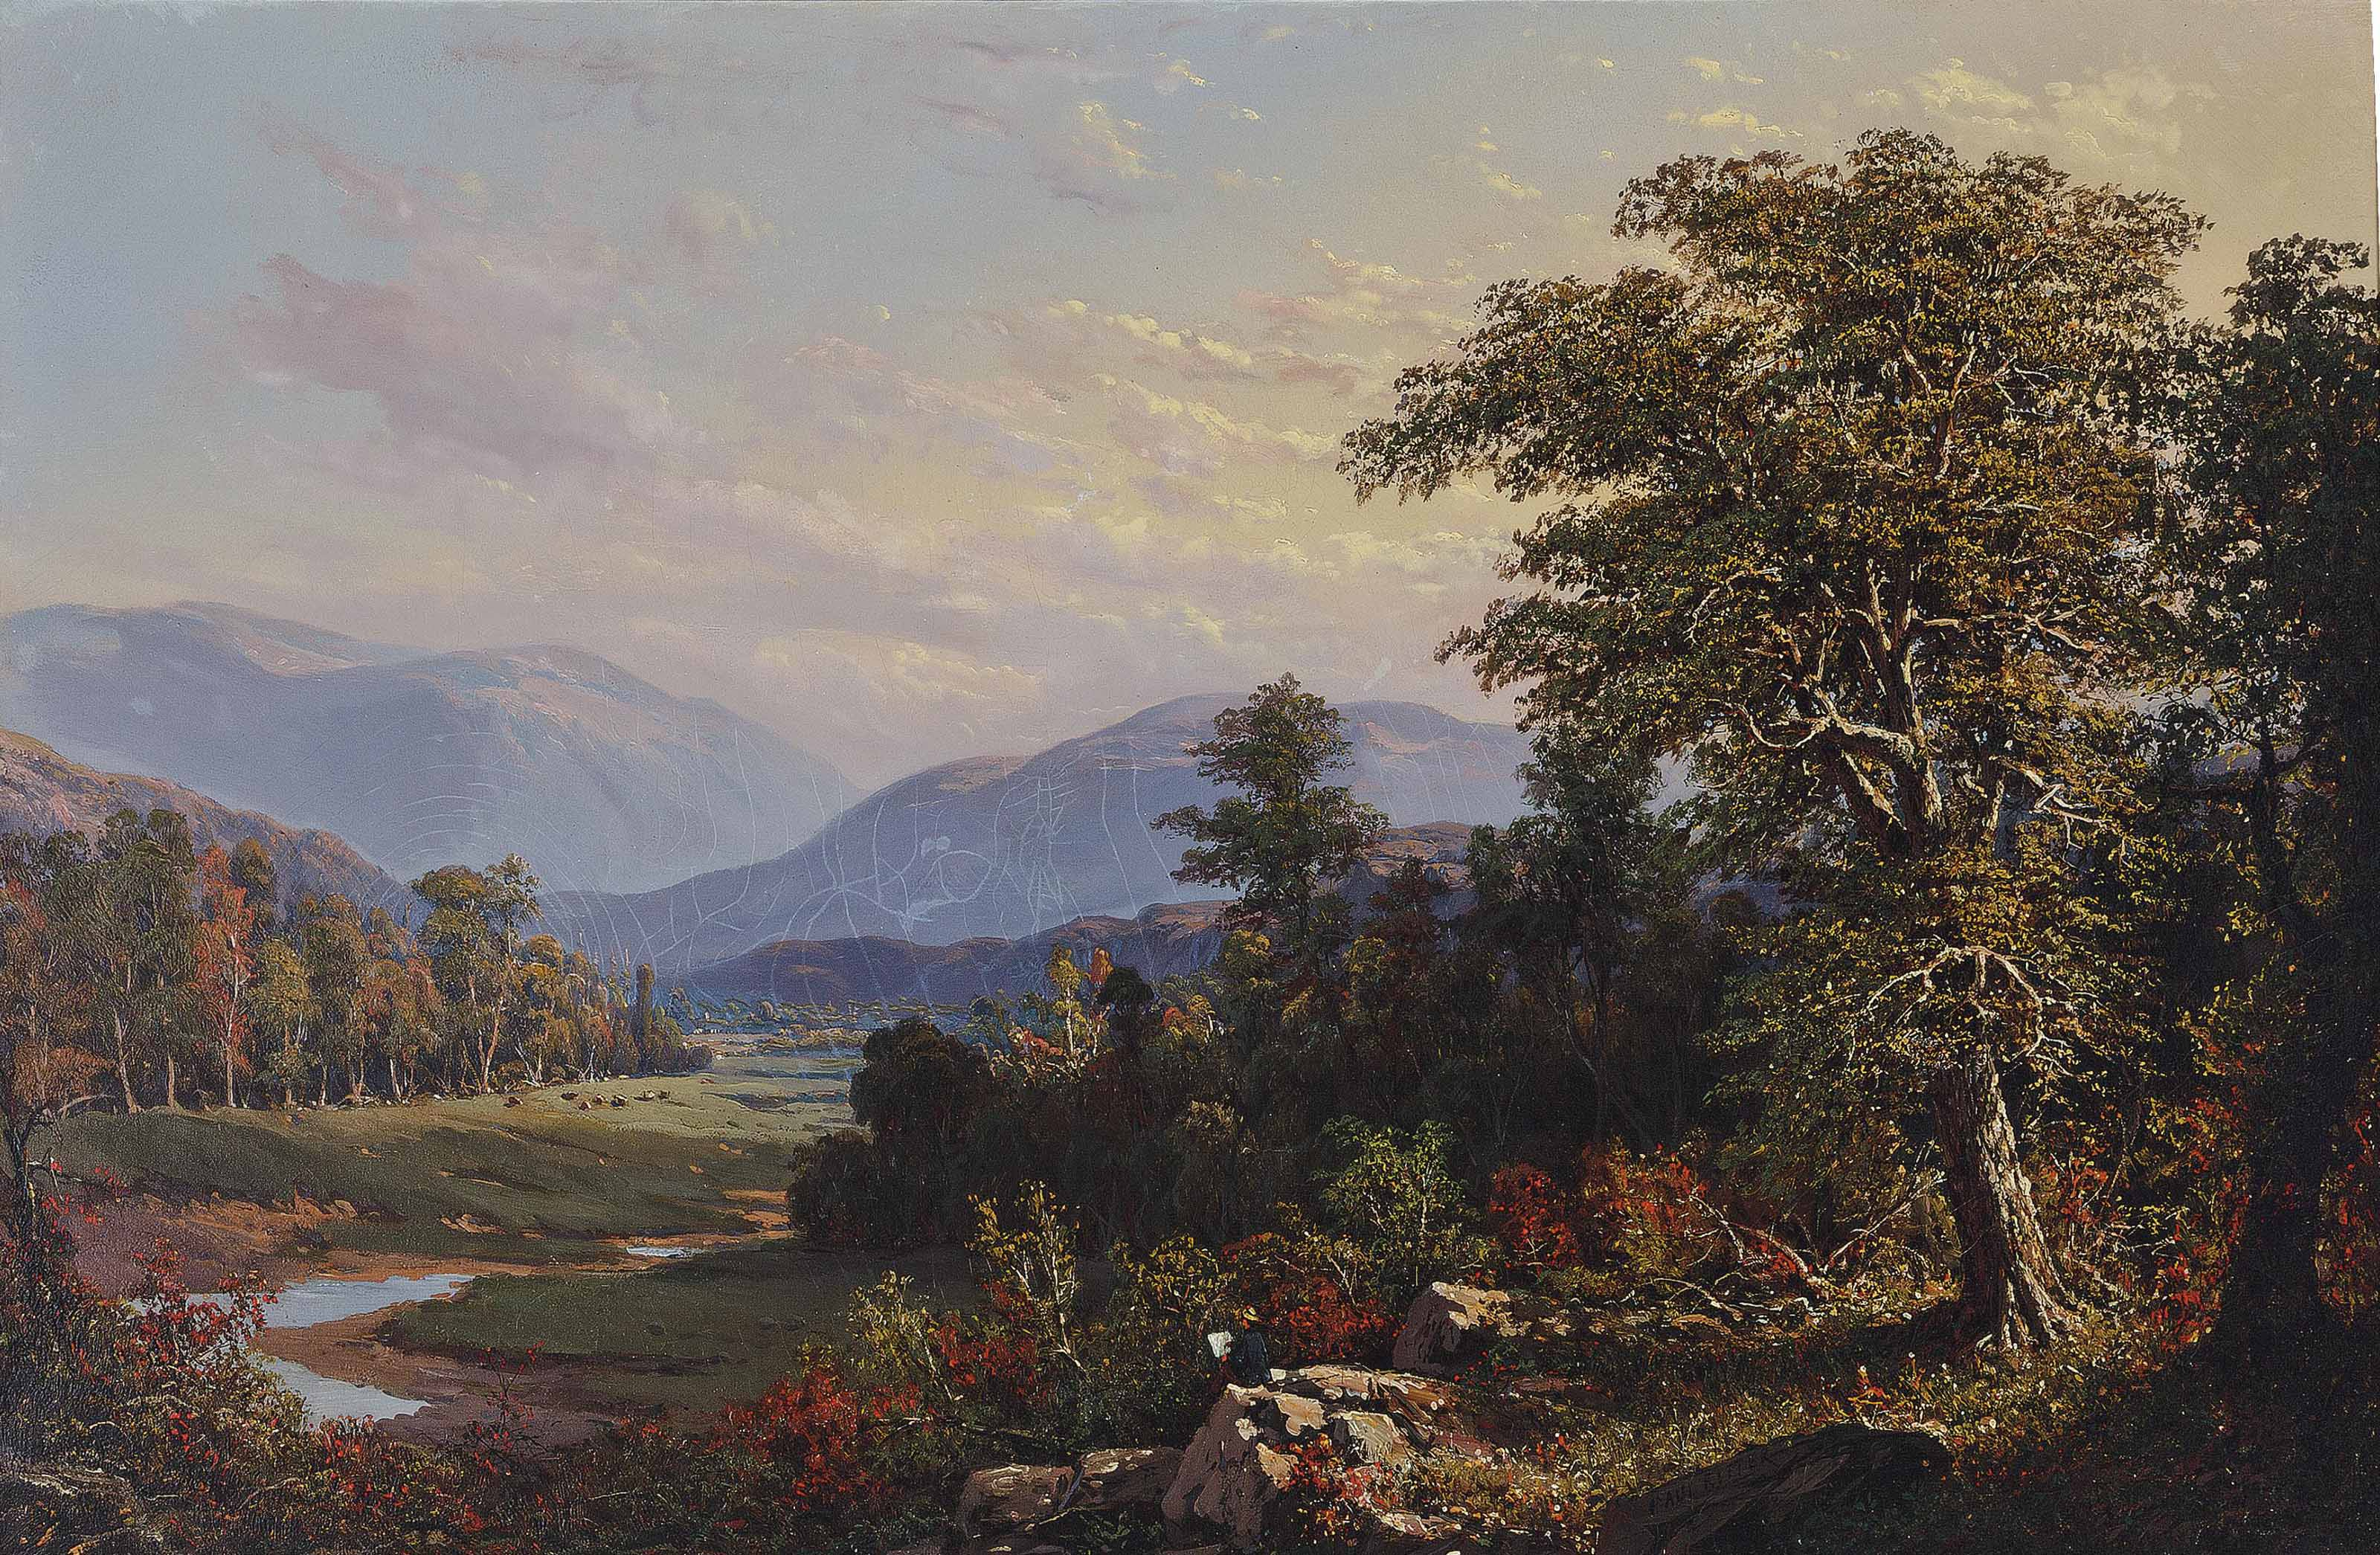 Valley in the White Mountains, New Hampshire